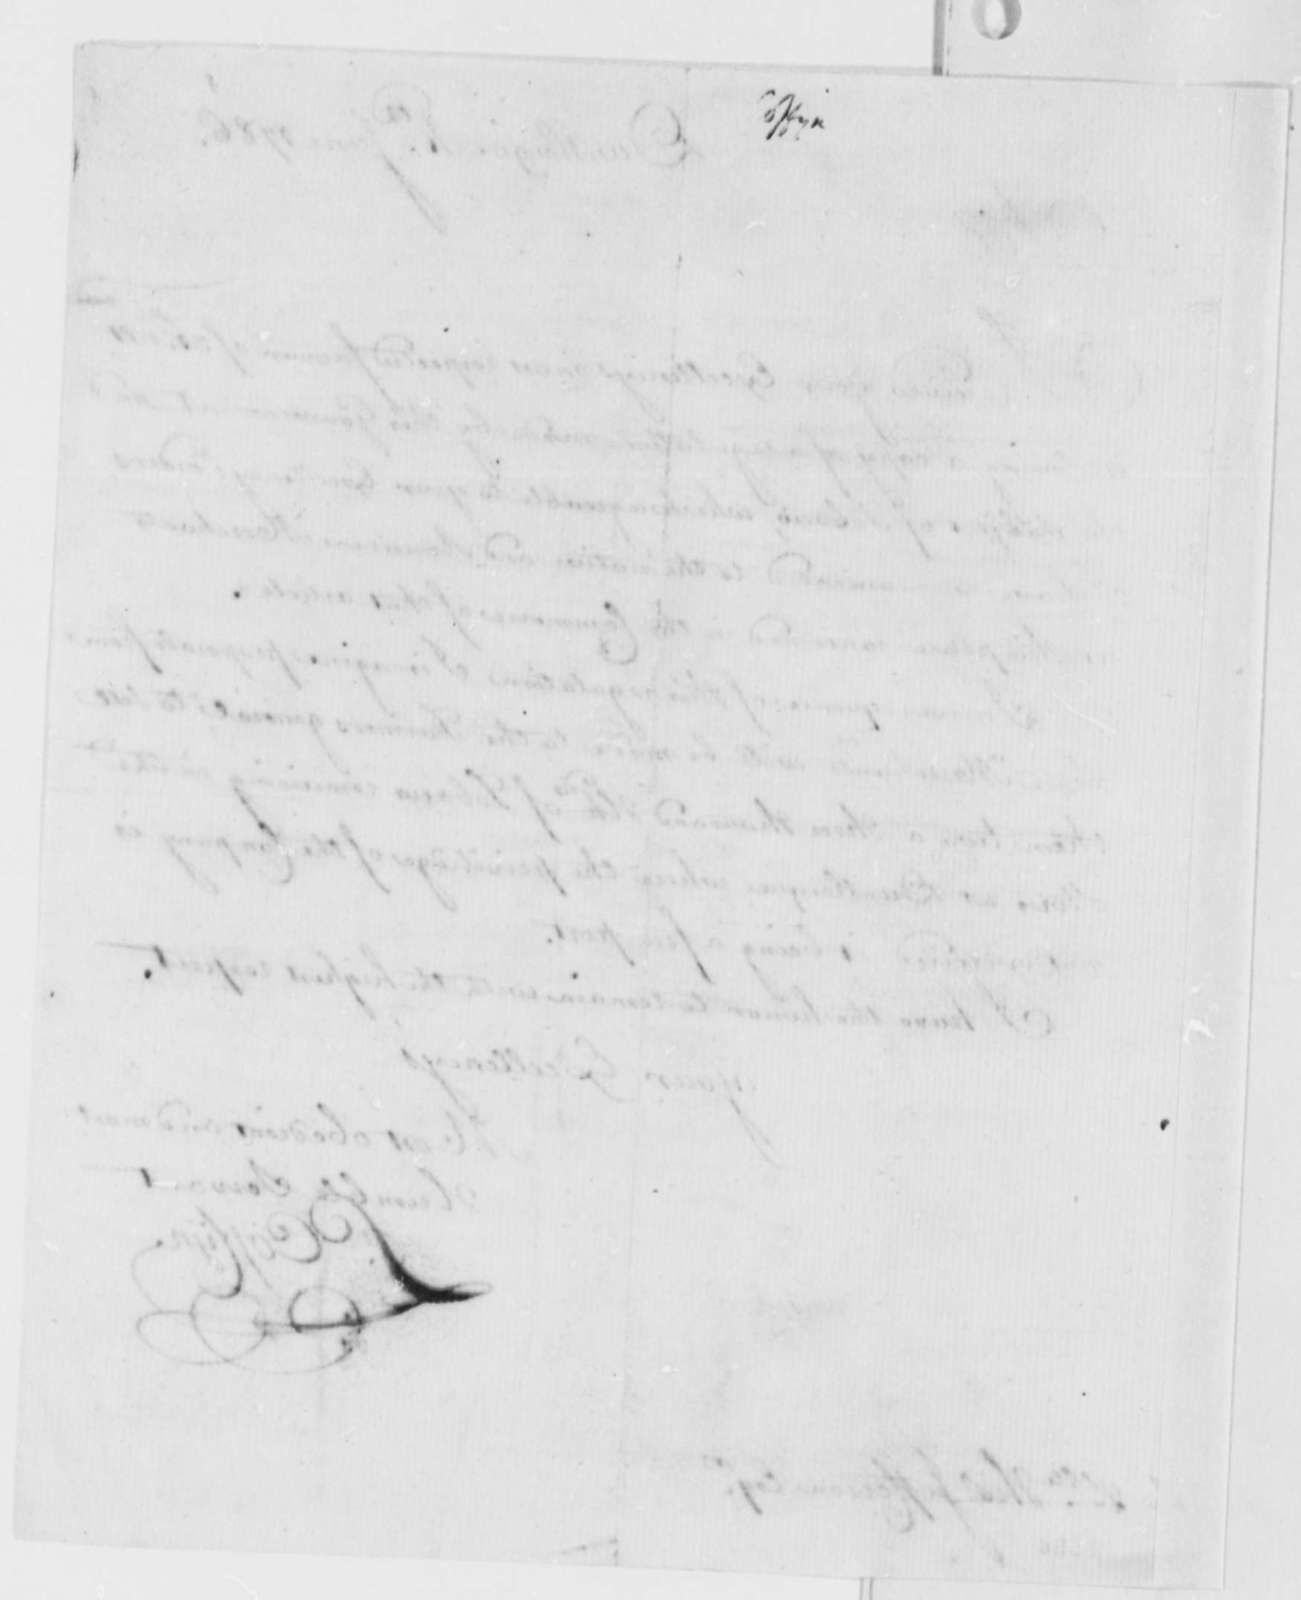 Francis Coffyn to Thomas Jefferson, June 4, 1786, Tobacco Trade Regulations